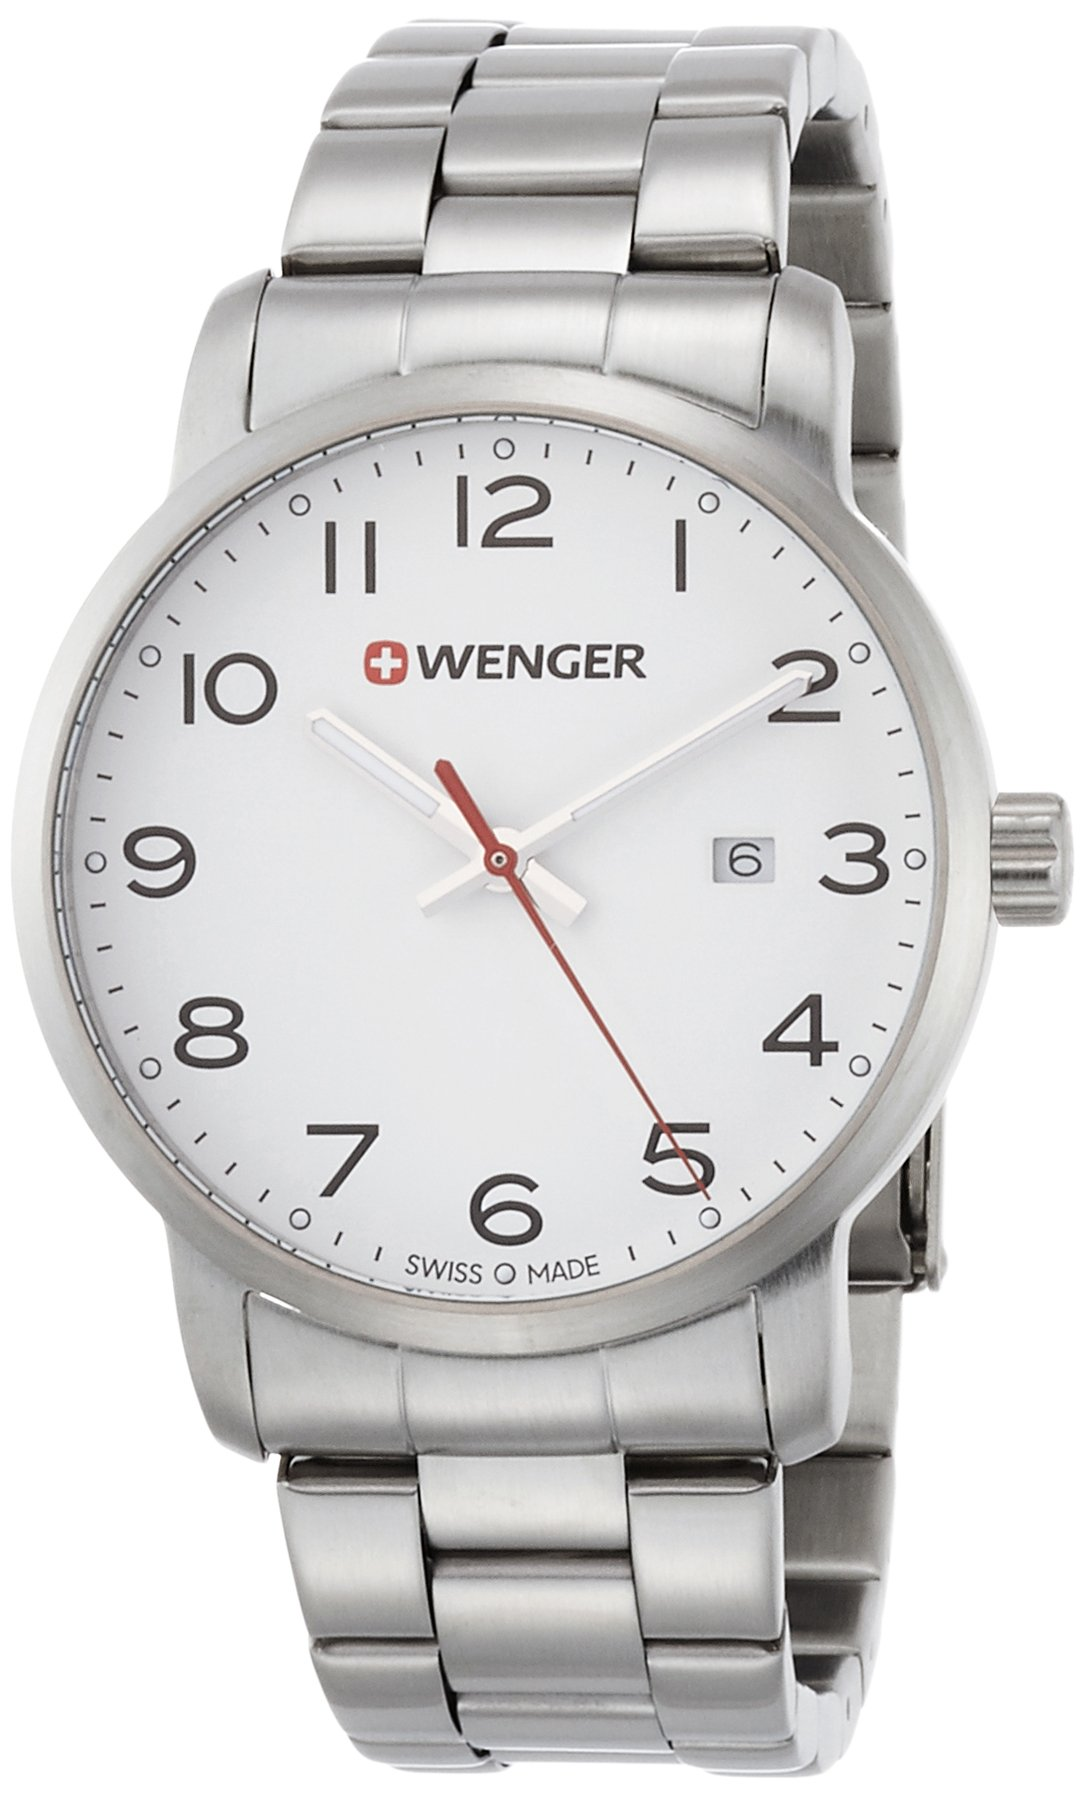 WENGER Unisex Analogue Quartz Watch with Stainless Steel Strap 01.1641.104